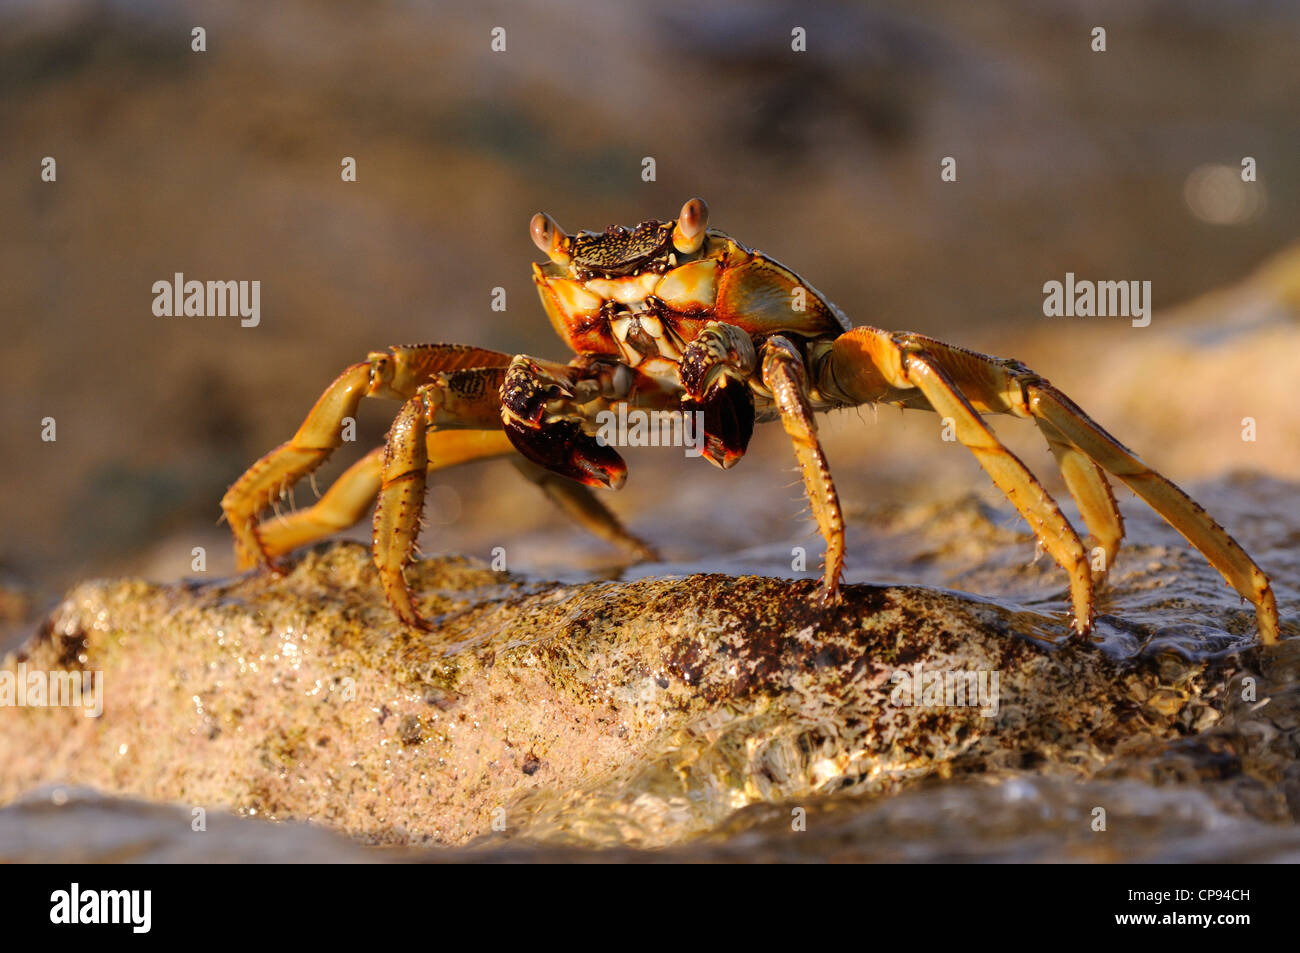 Sally Lighfoot Crab (Grapsus species) resting on rock, The Maldives - Stock Image